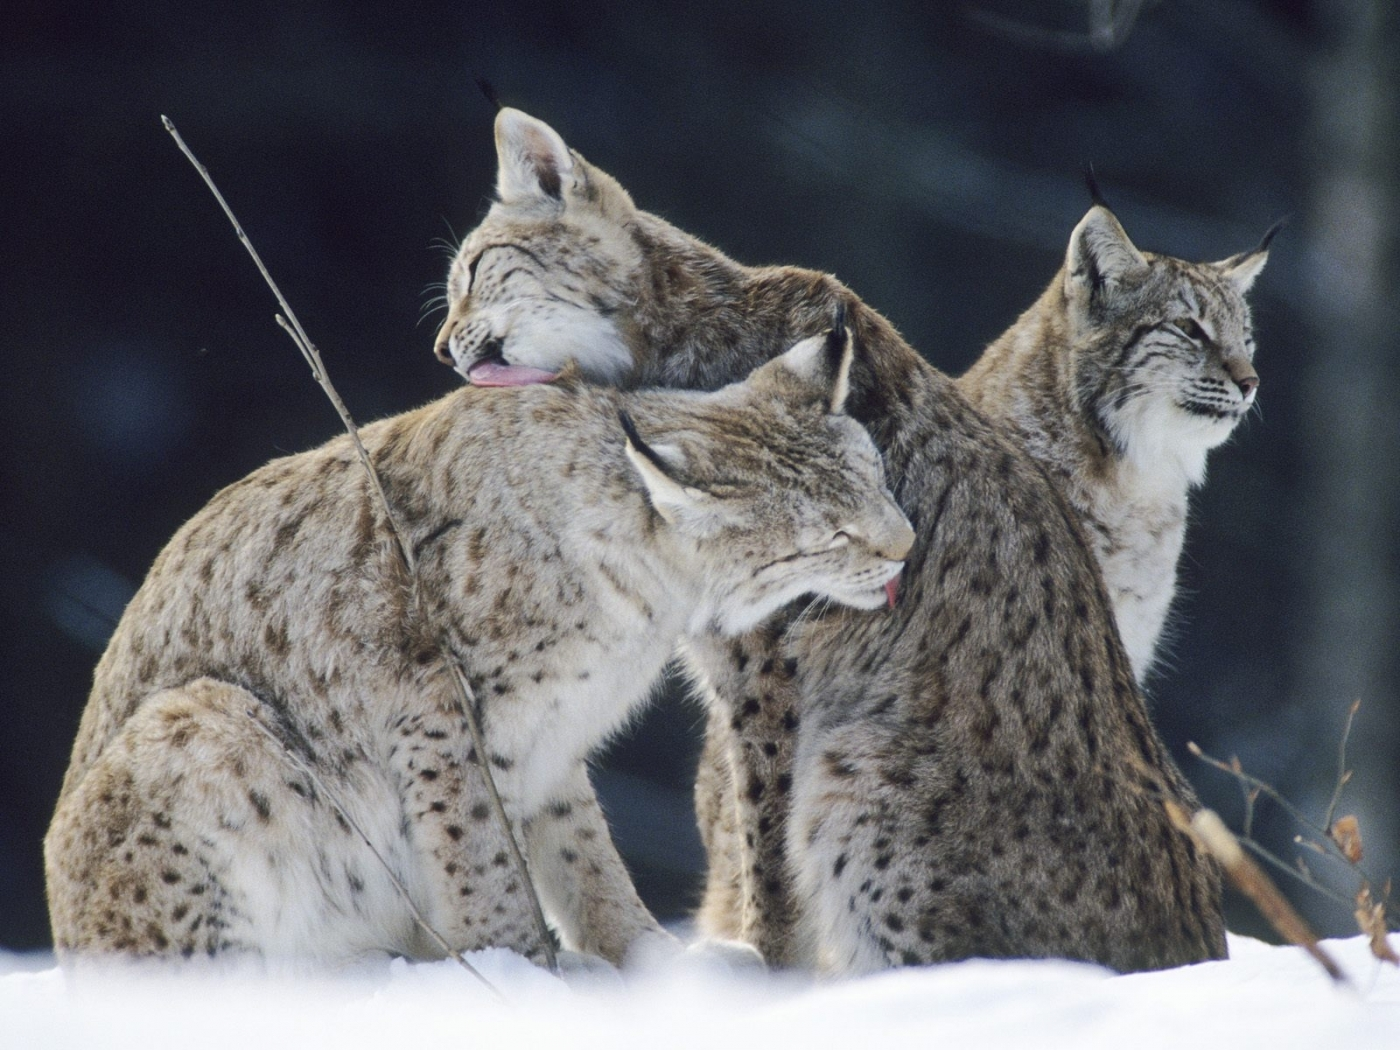 27749 download wallpaper Animals, Bobcats screensavers and pictures for free